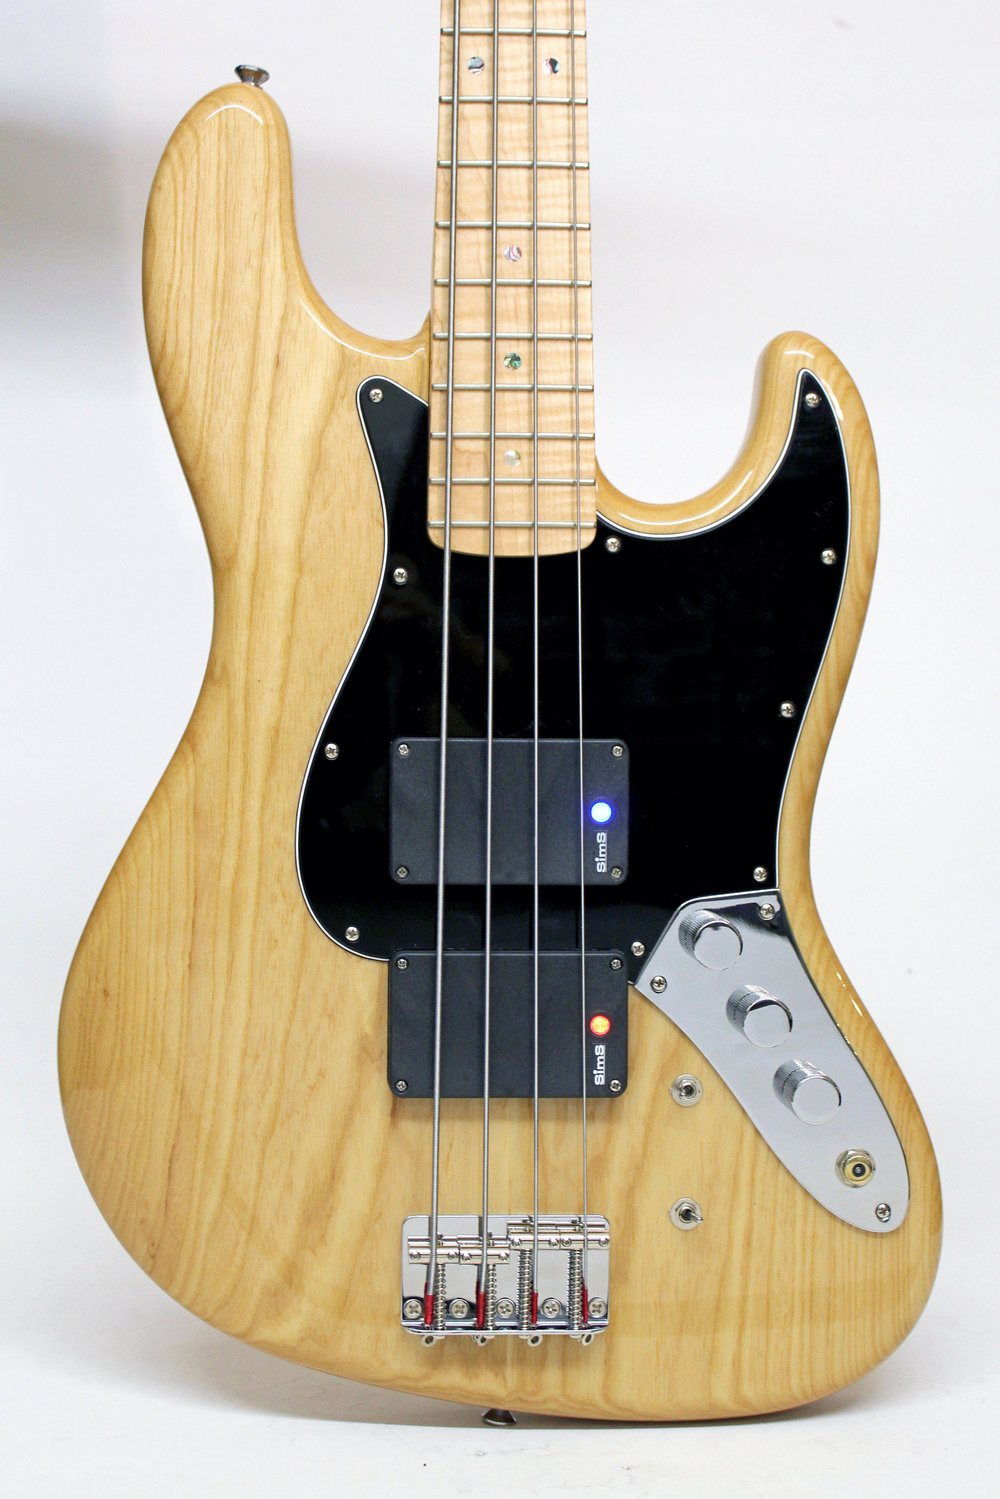 Enfield Avenger J Jazz Bass Natural Super-Quad Pickups